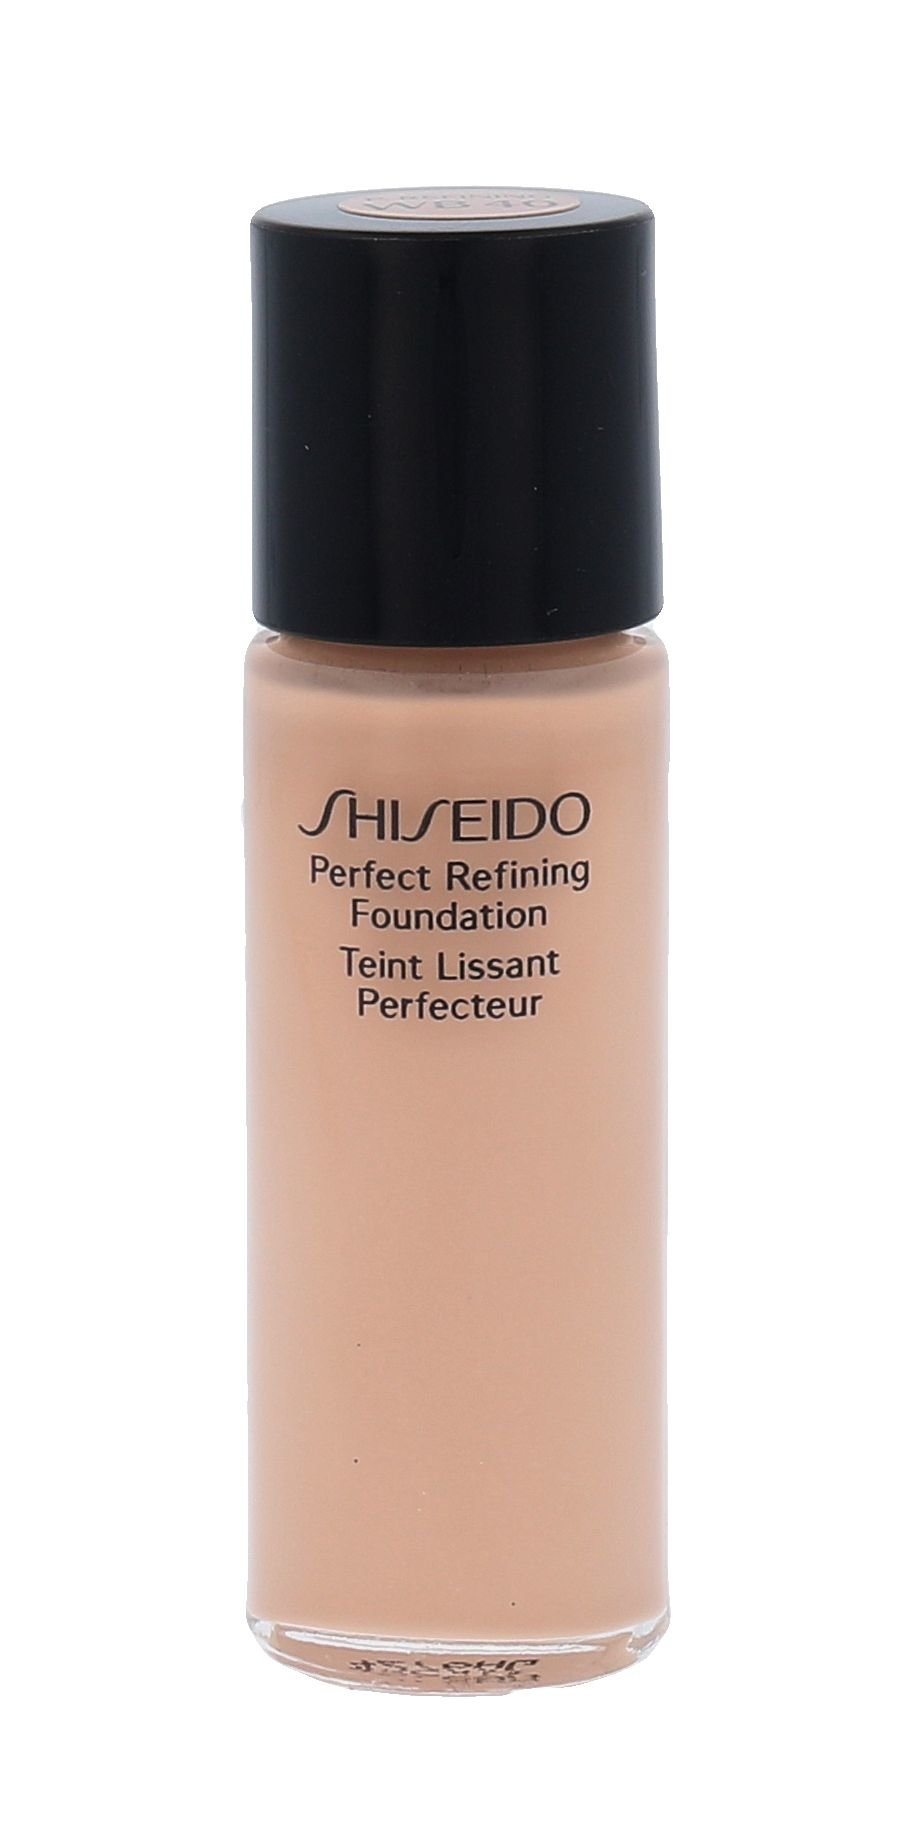 Shiseido Perfect Refining Foundation Cosmetic 15ml WB40 Natural Fair Warm Beige